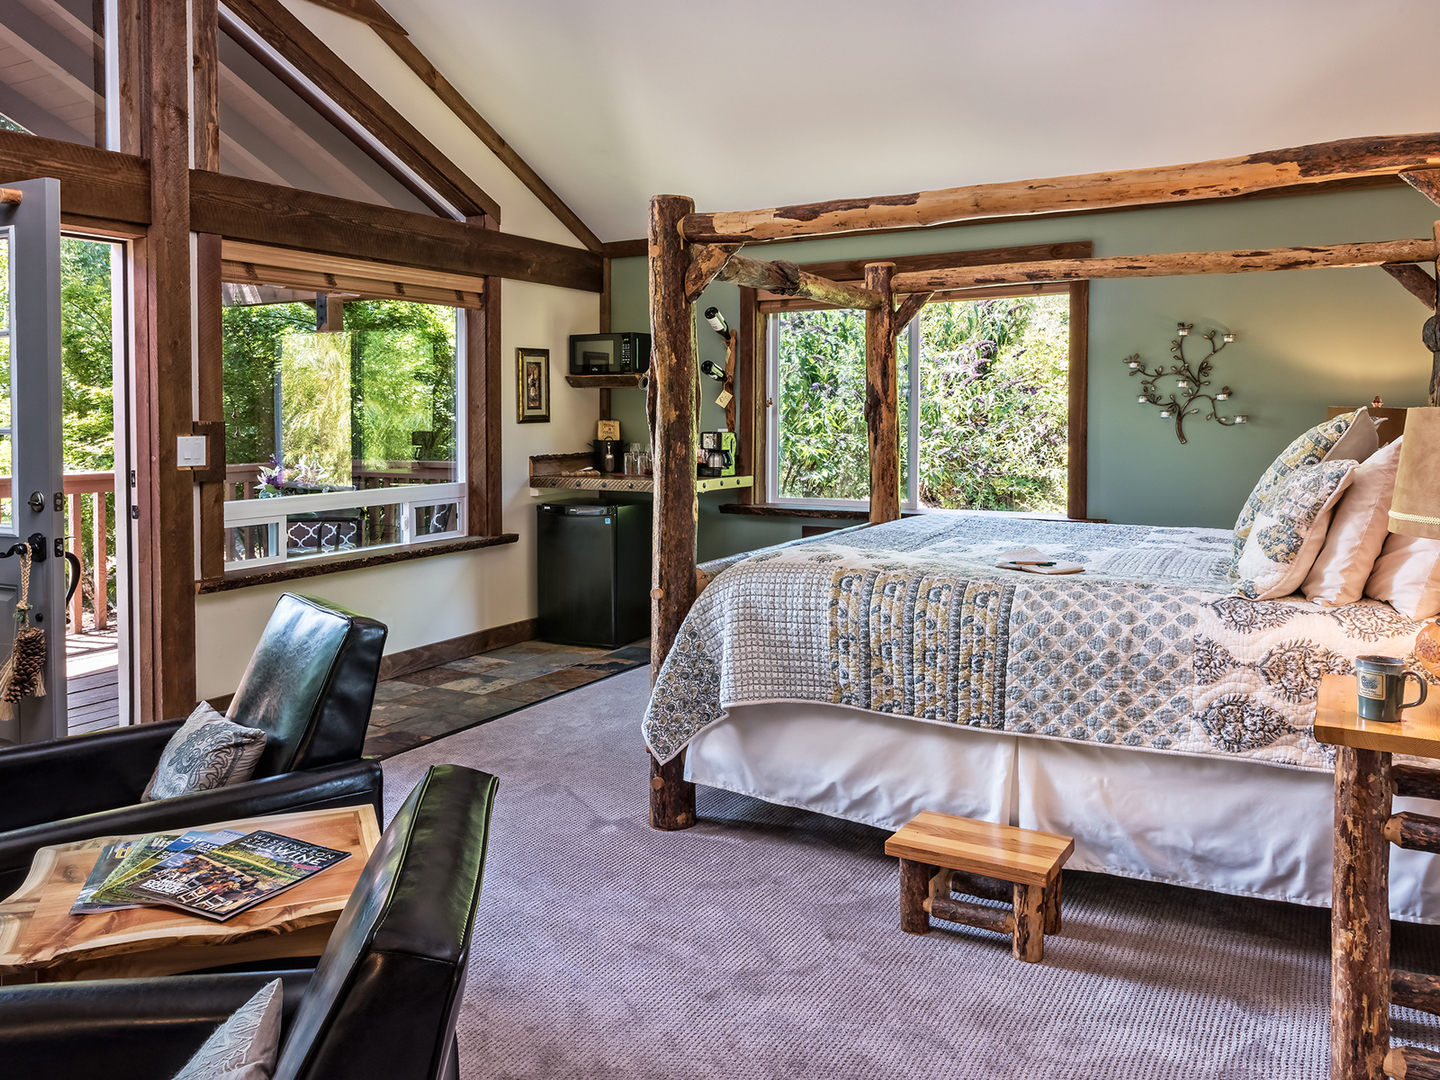 A bedroom with a bed and a chair in a room at Carson Ridge Luxury Cabins.